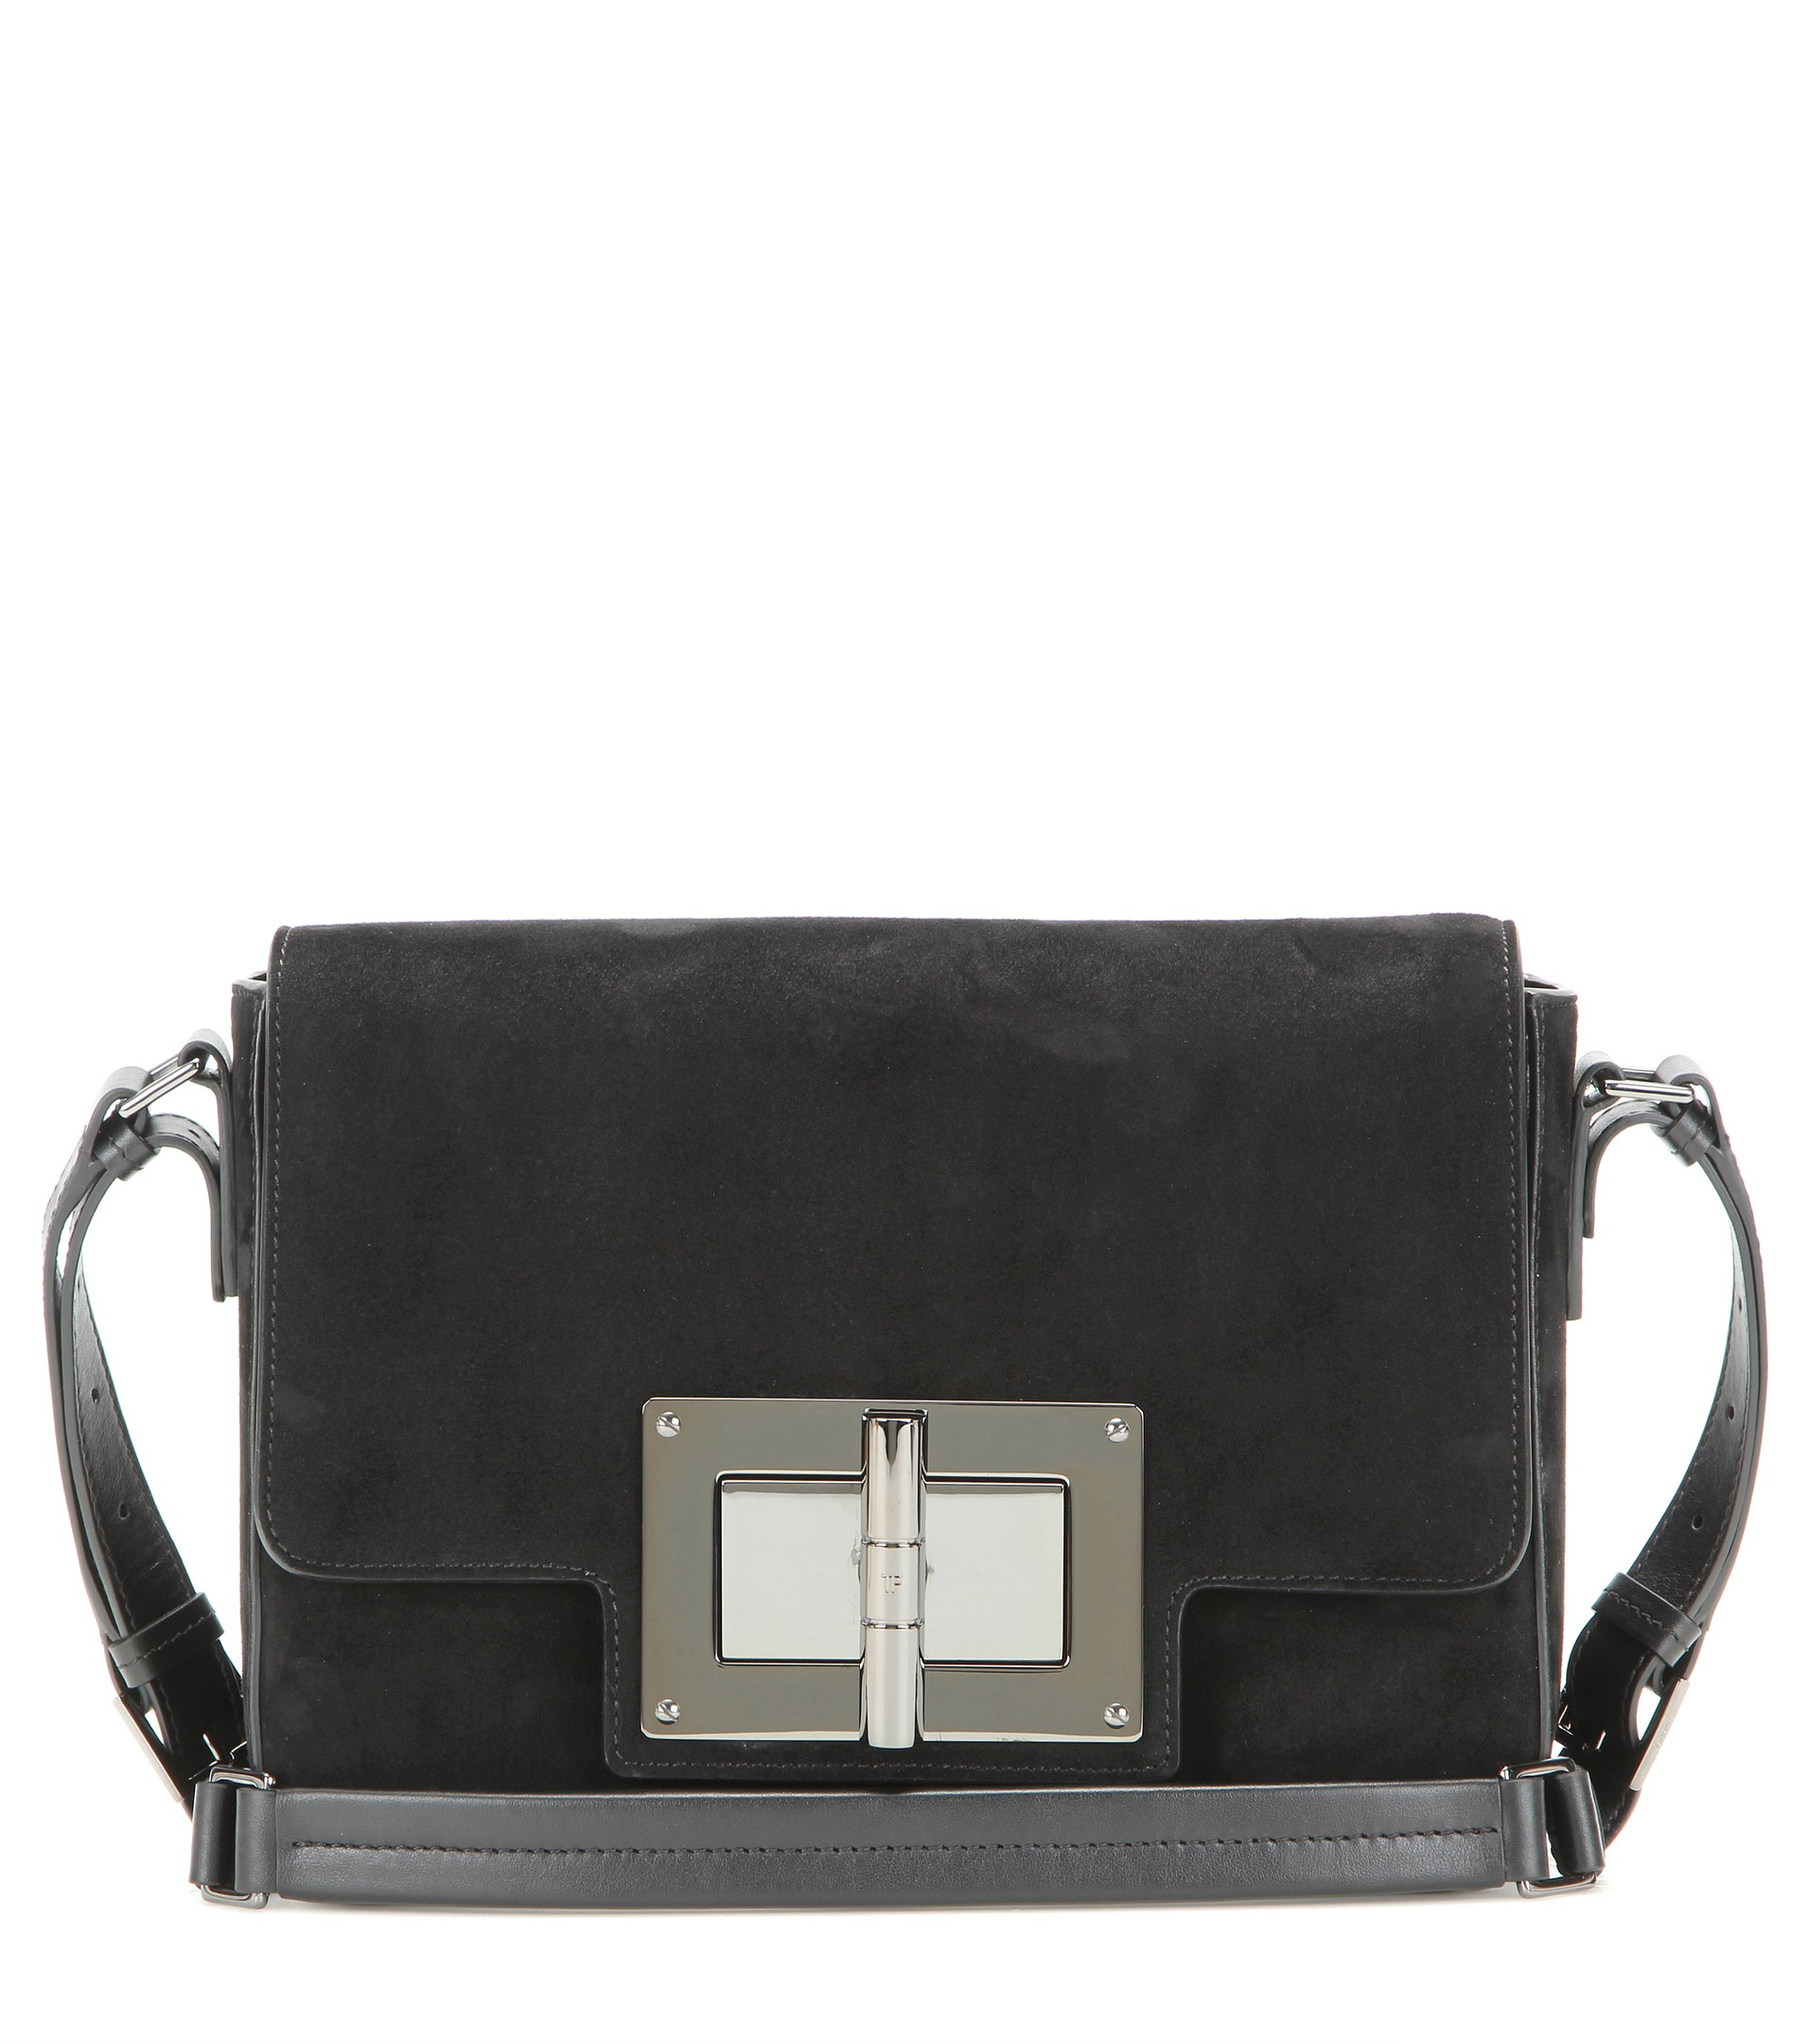 be902de2a Tom Ford Natalia Medium Suede Shoulder Bag in Black - Lyst